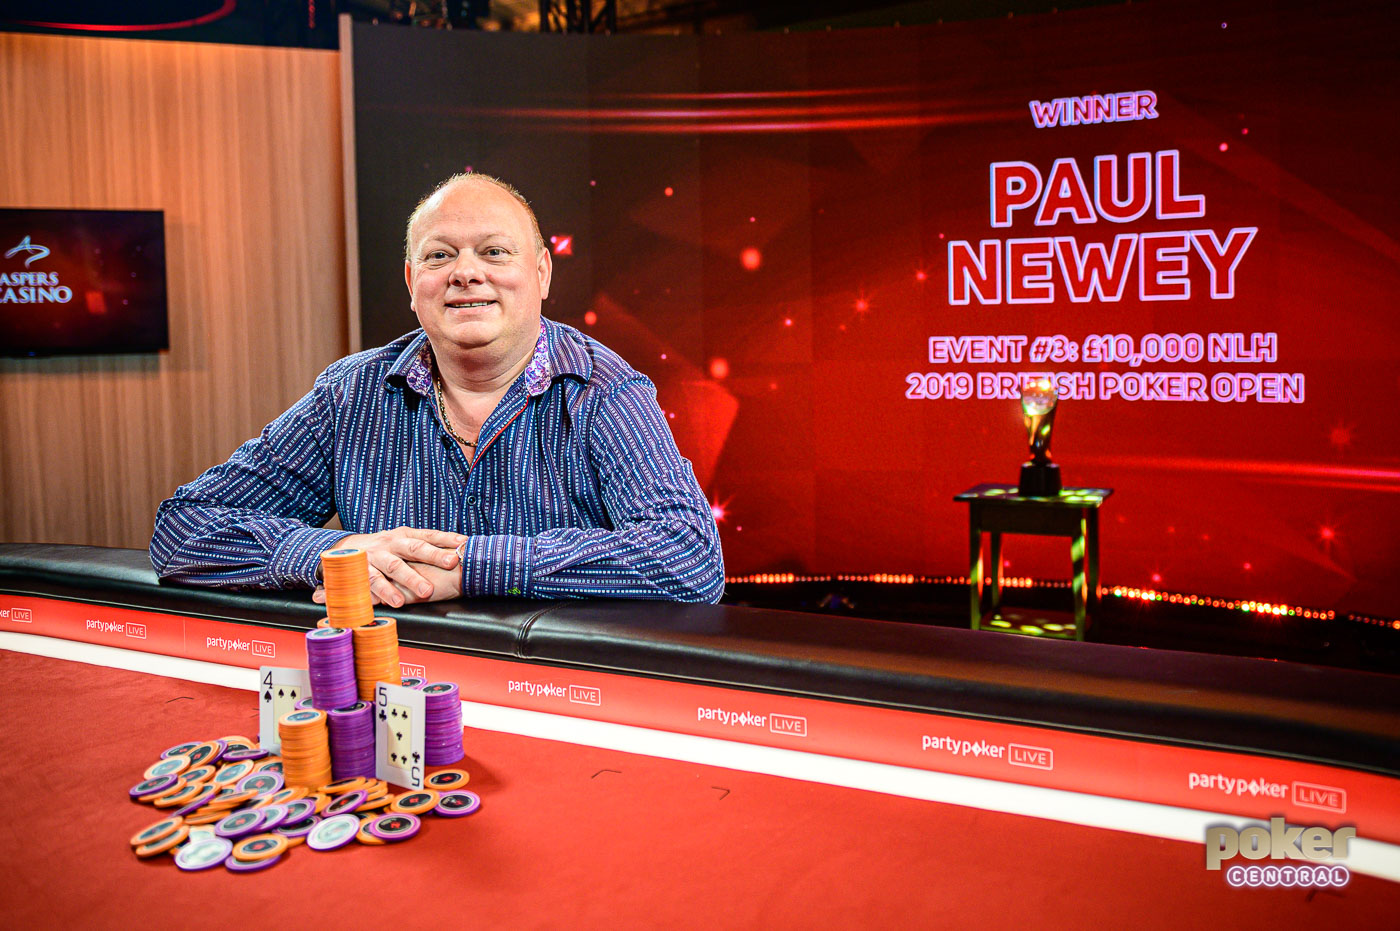 Extremely pleased with his maiden tournament win, Paul Newey poses with his winning hand.